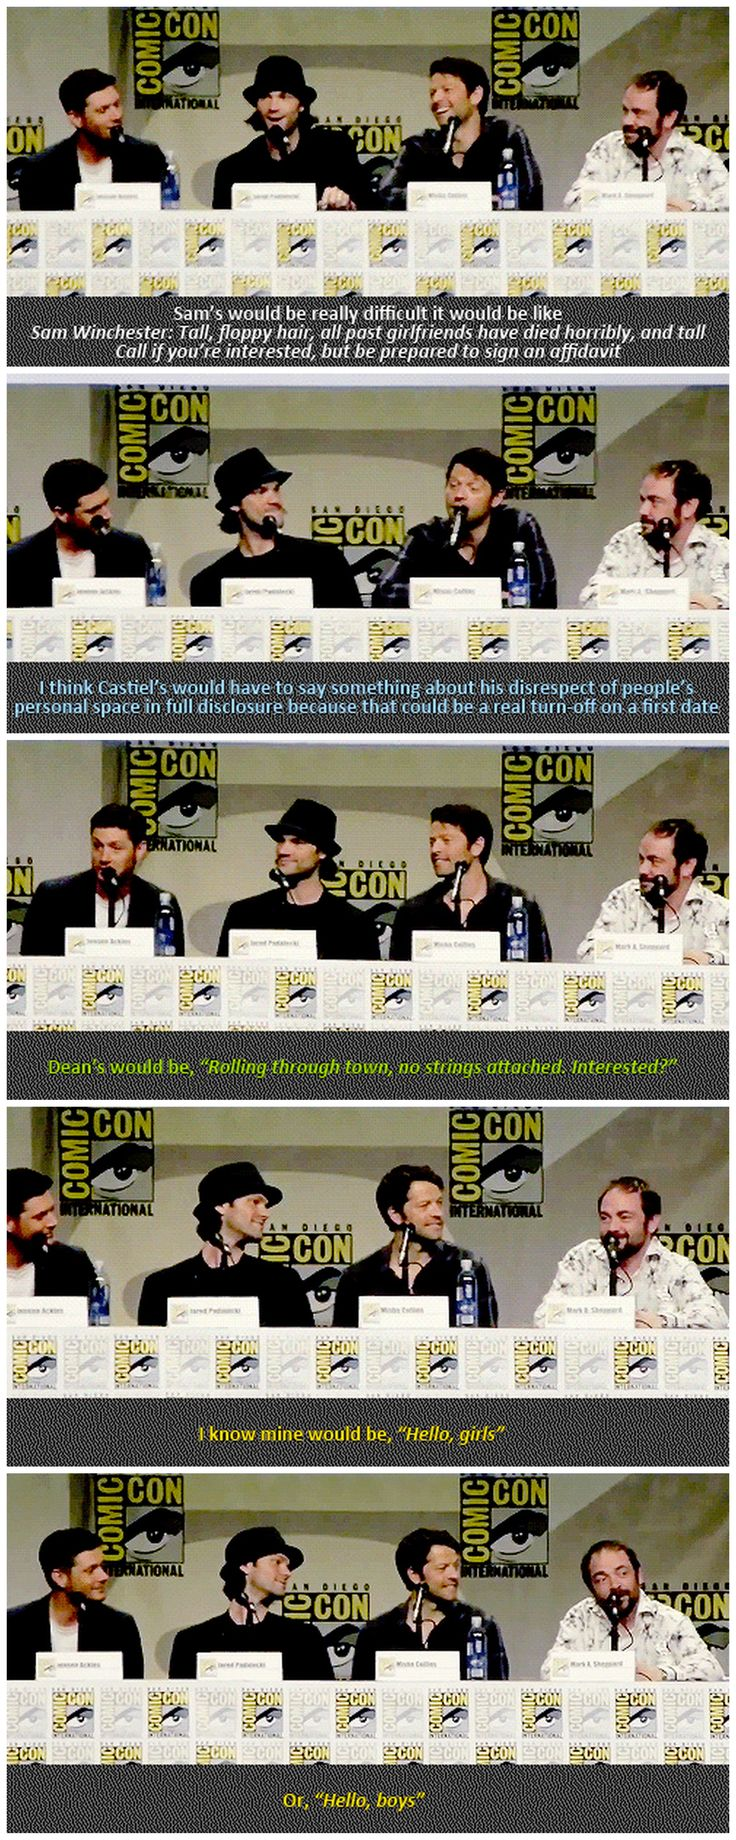 [gifset] What would be your character's dating profile? #SDCC14 <--- So funny brother dropped the phone. :)